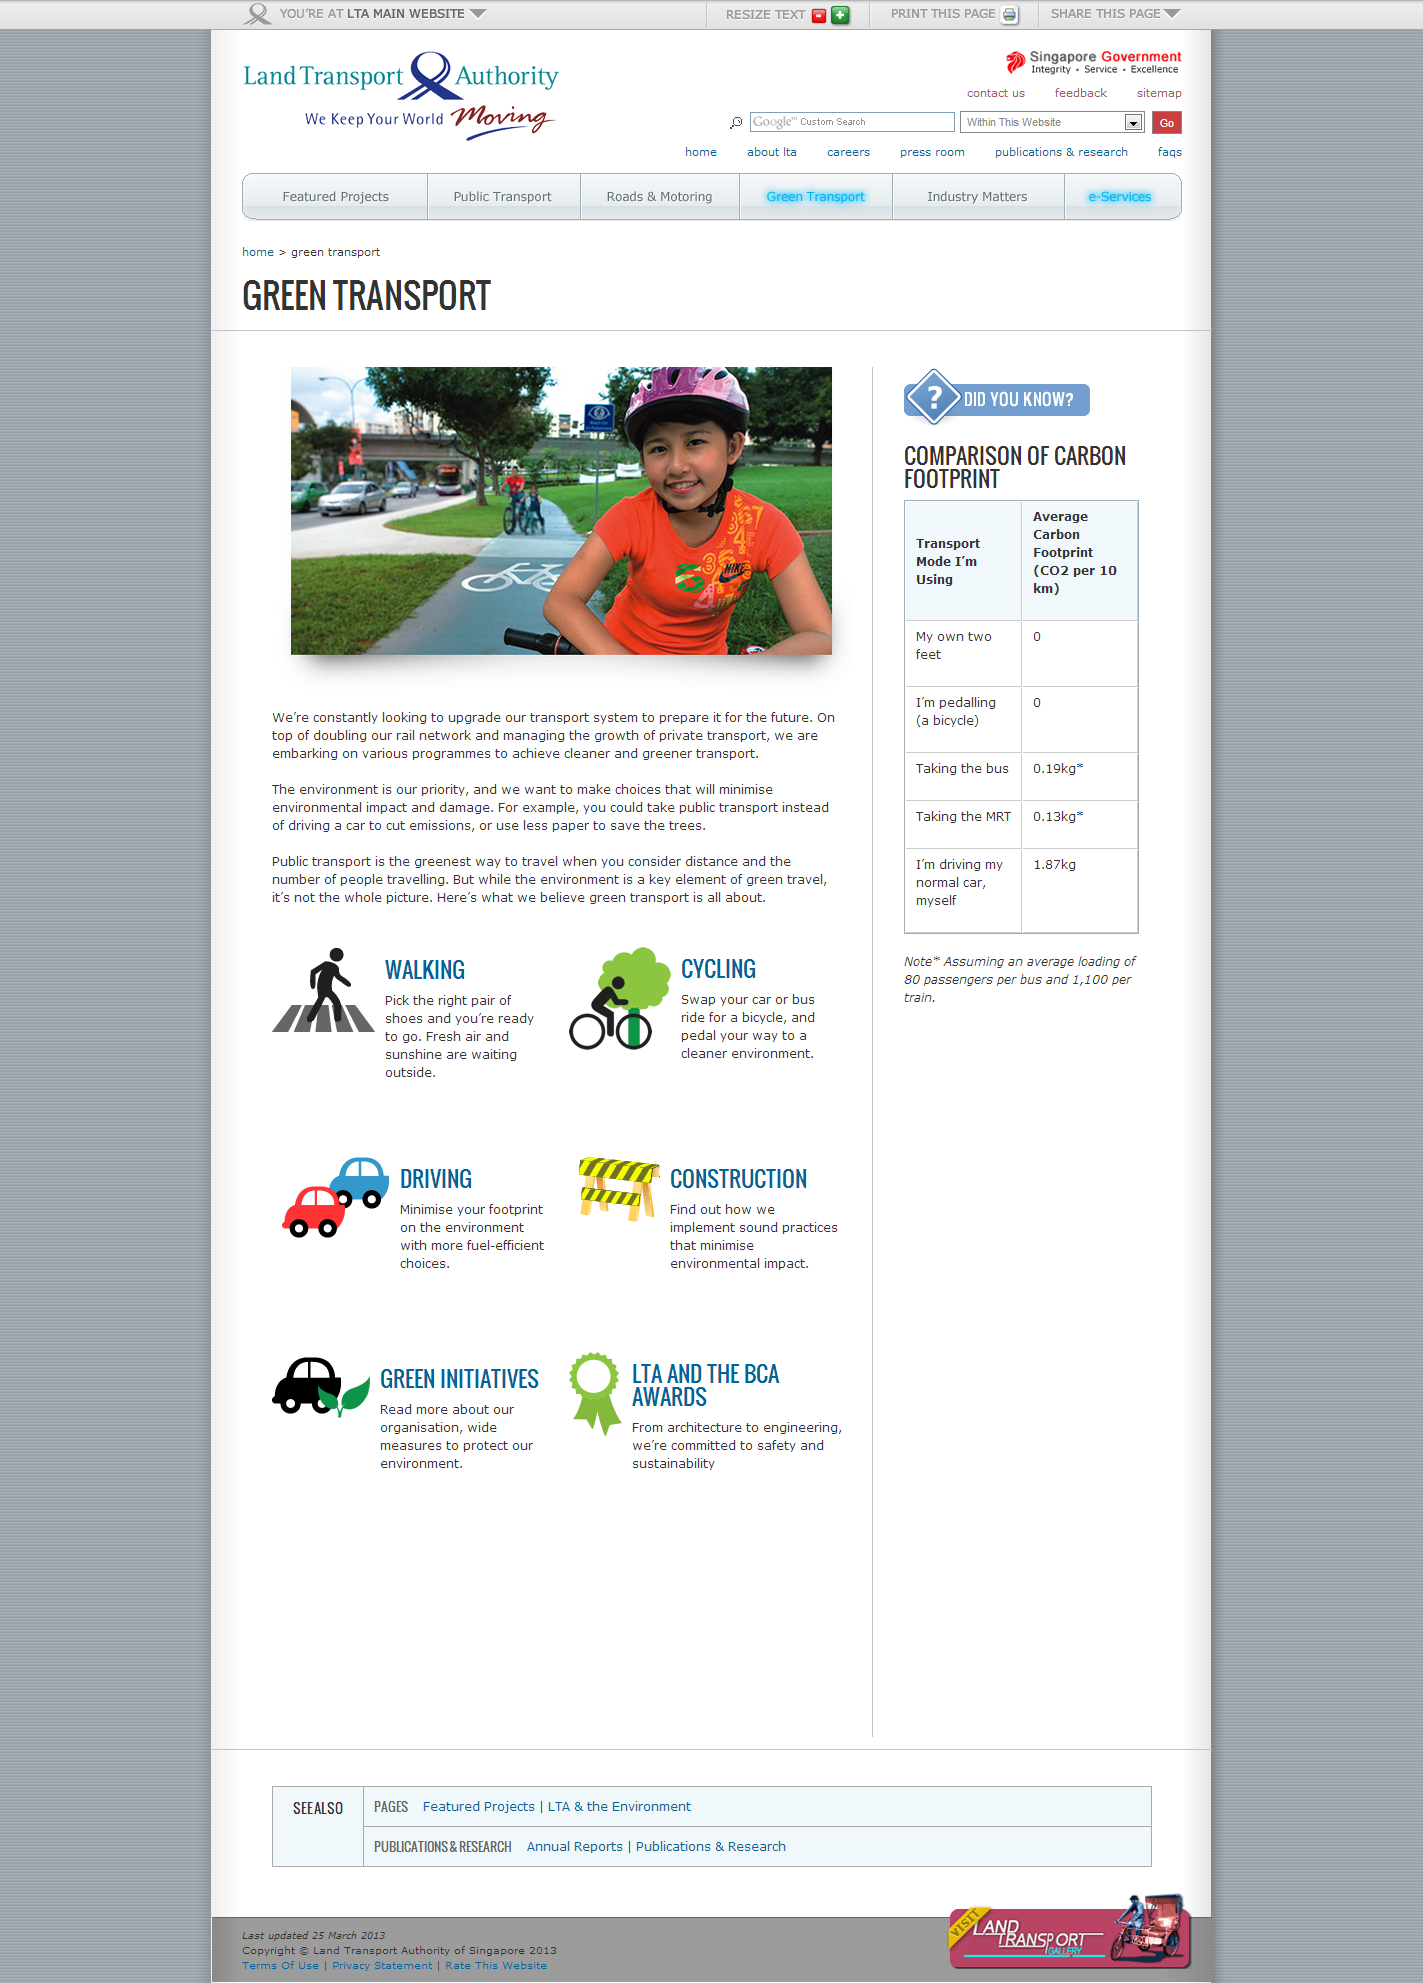 Land Transport Authority Corporate Website Image 3